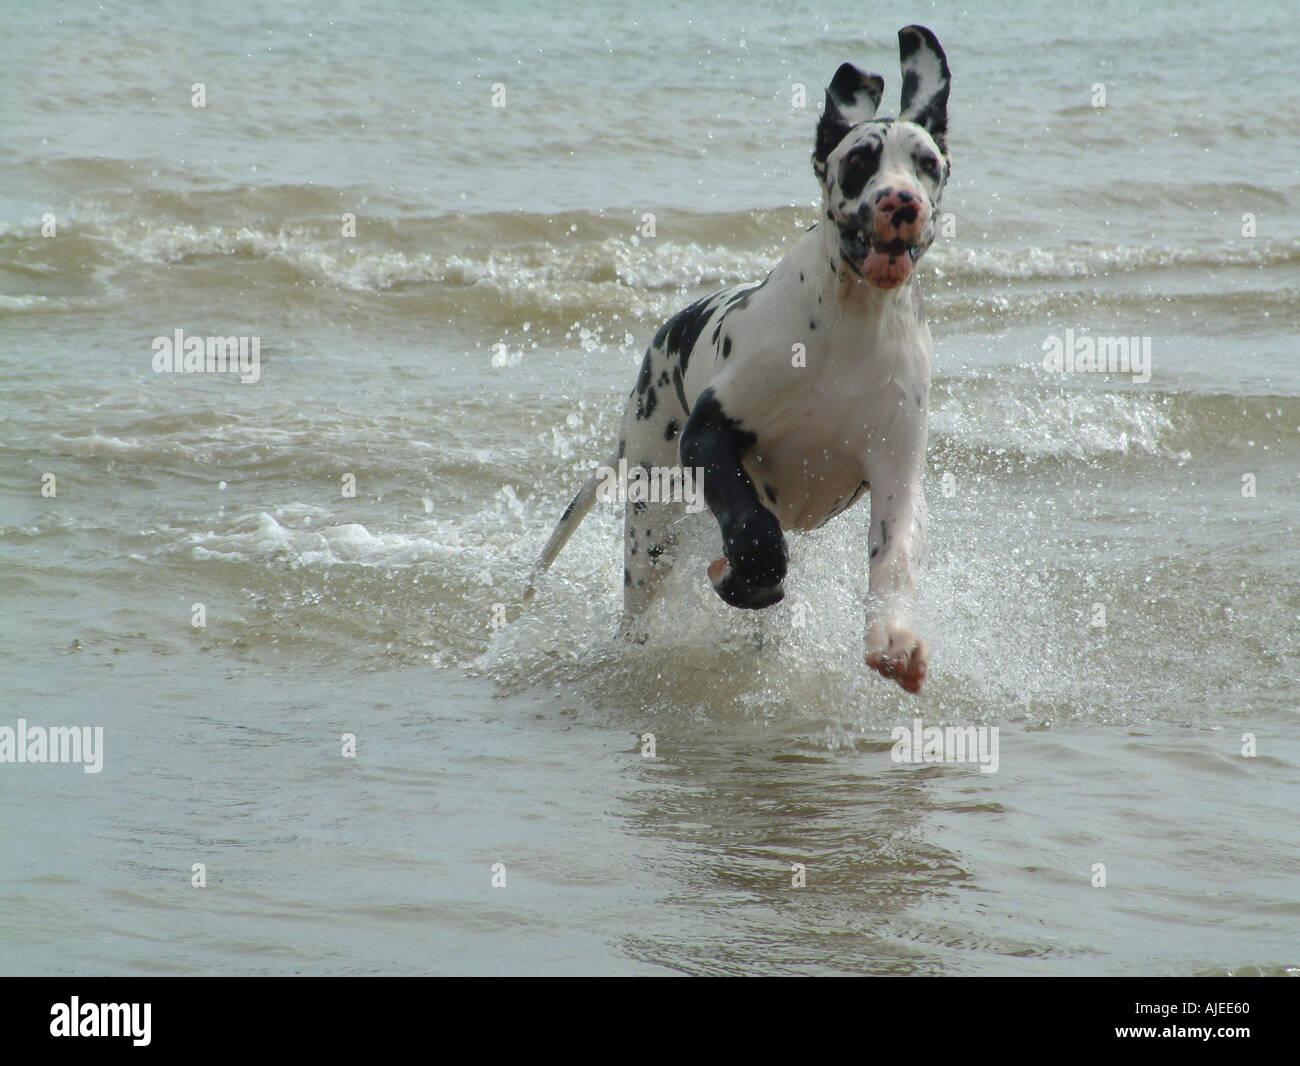 Great dane running in sea - Stock Image